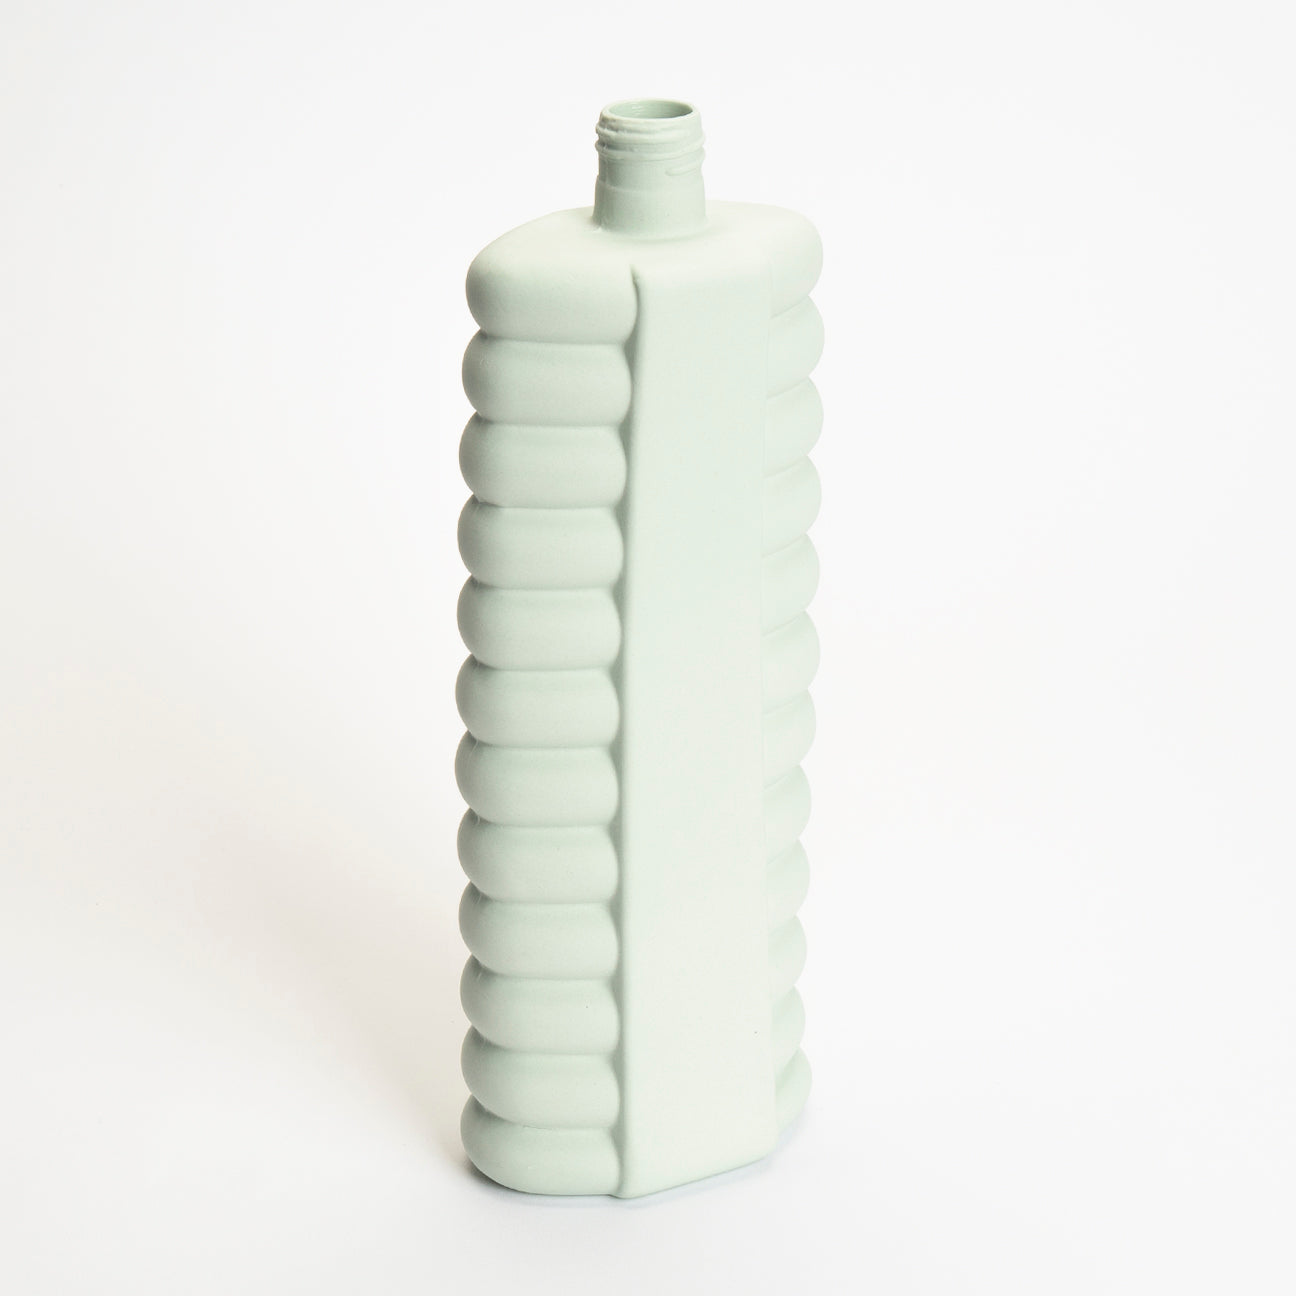 Bottle Vase #10 in Mint